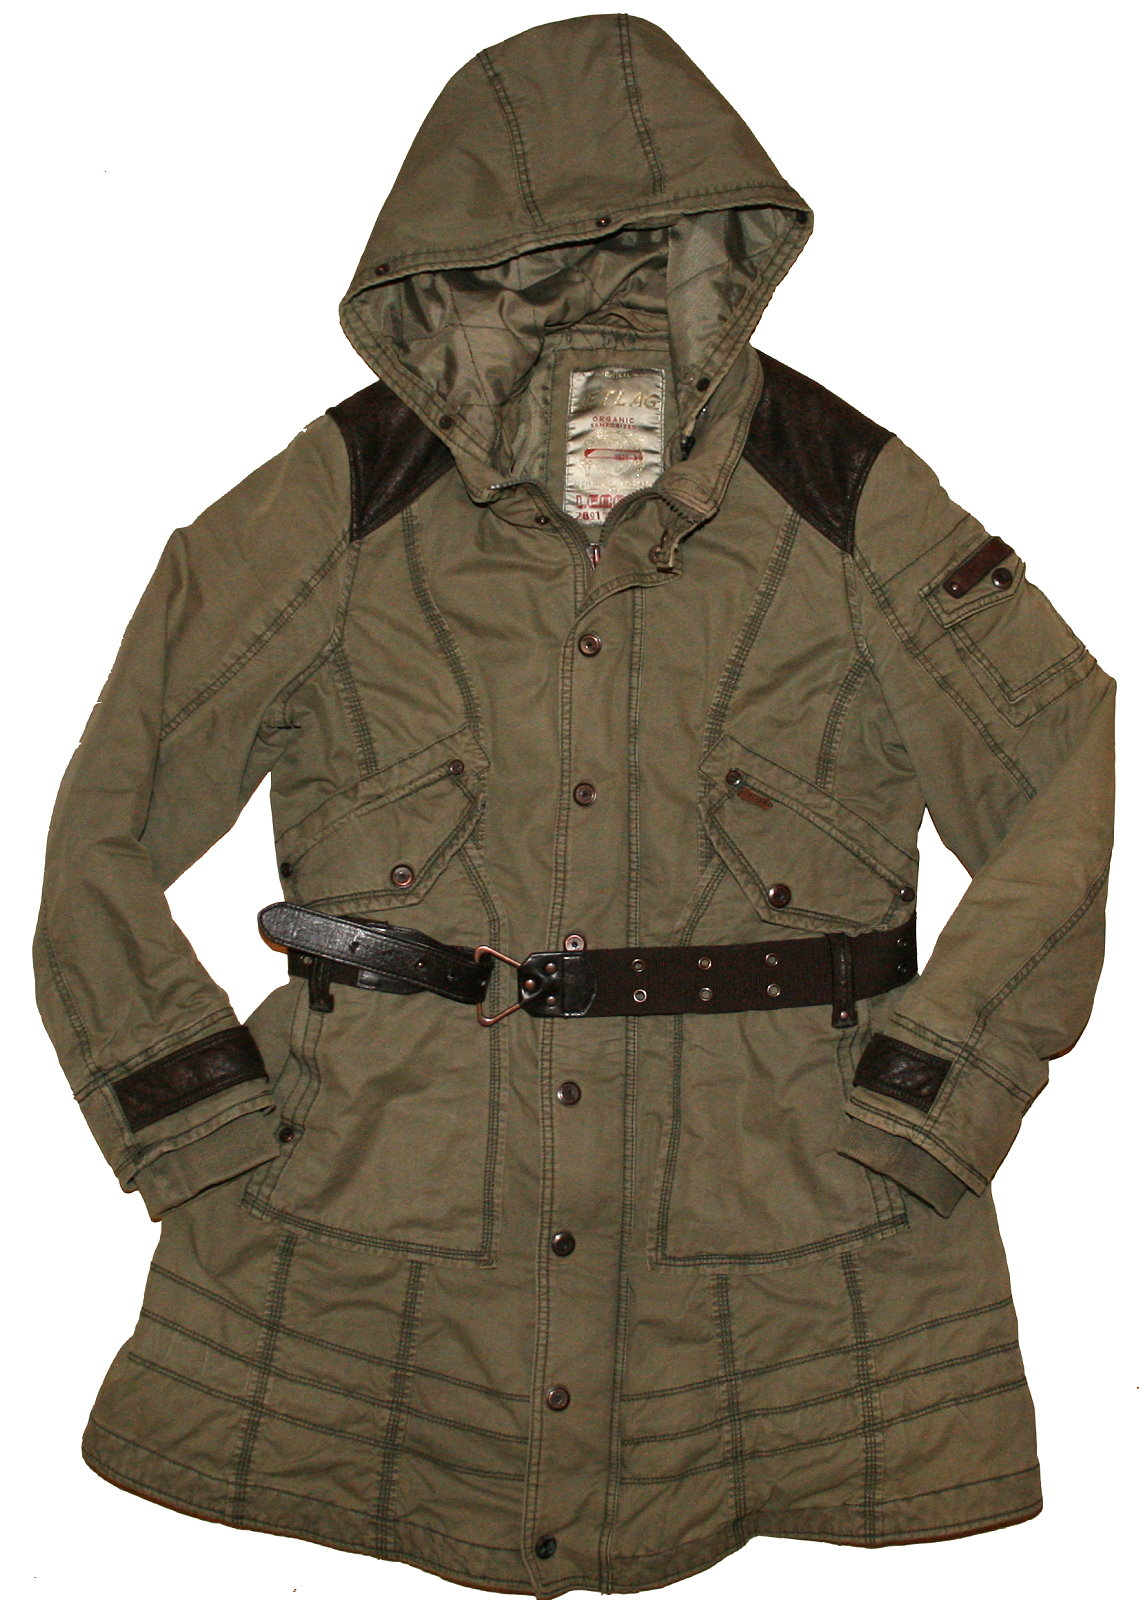 jetlag parka steppmantel khaki olive kapuze wintermantel gr xxl 46 48 ebay. Black Bedroom Furniture Sets. Home Design Ideas